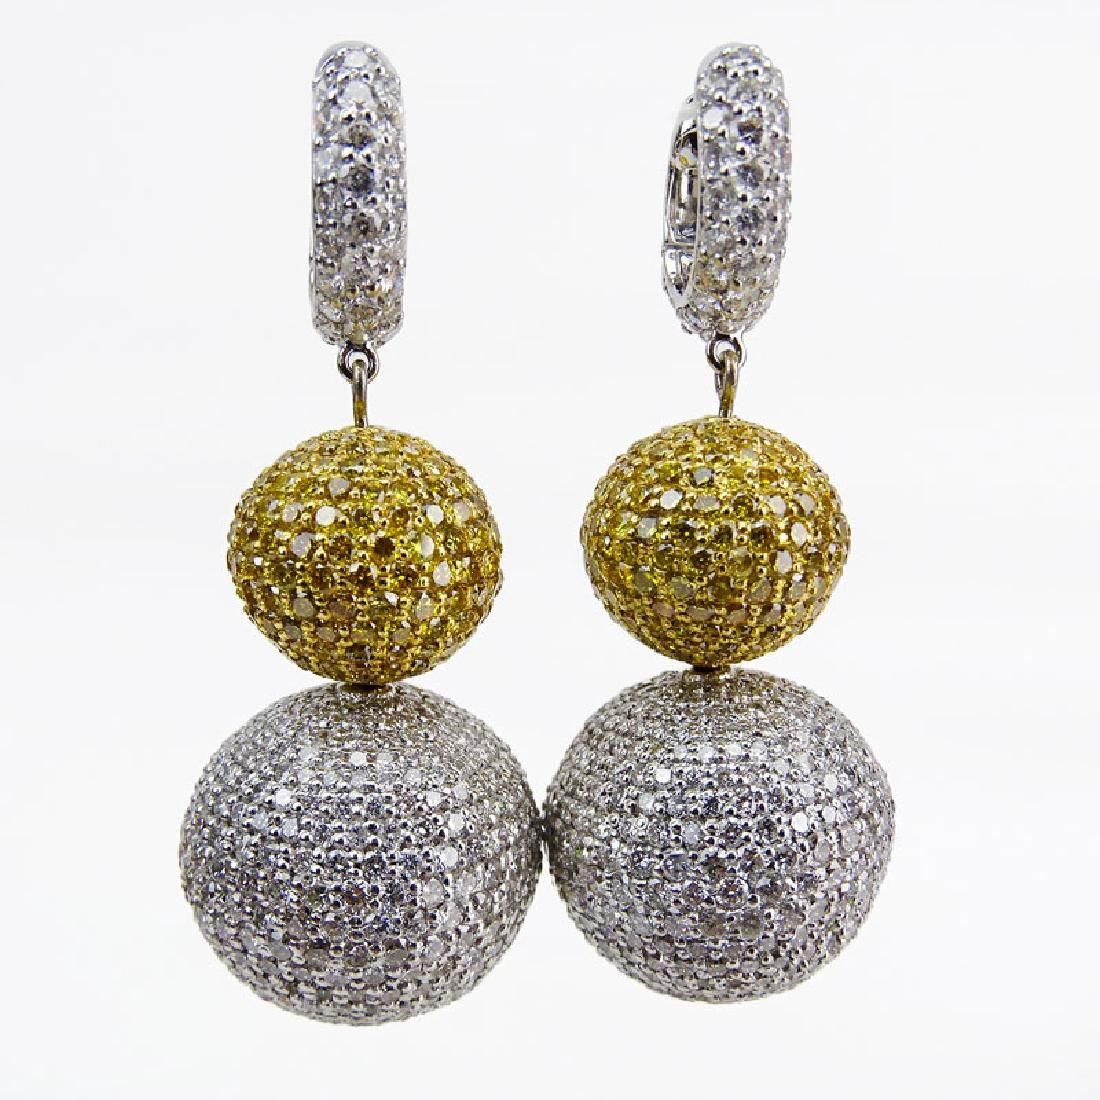 Contemporary Approx. 21.60 Carat Pave Set Round